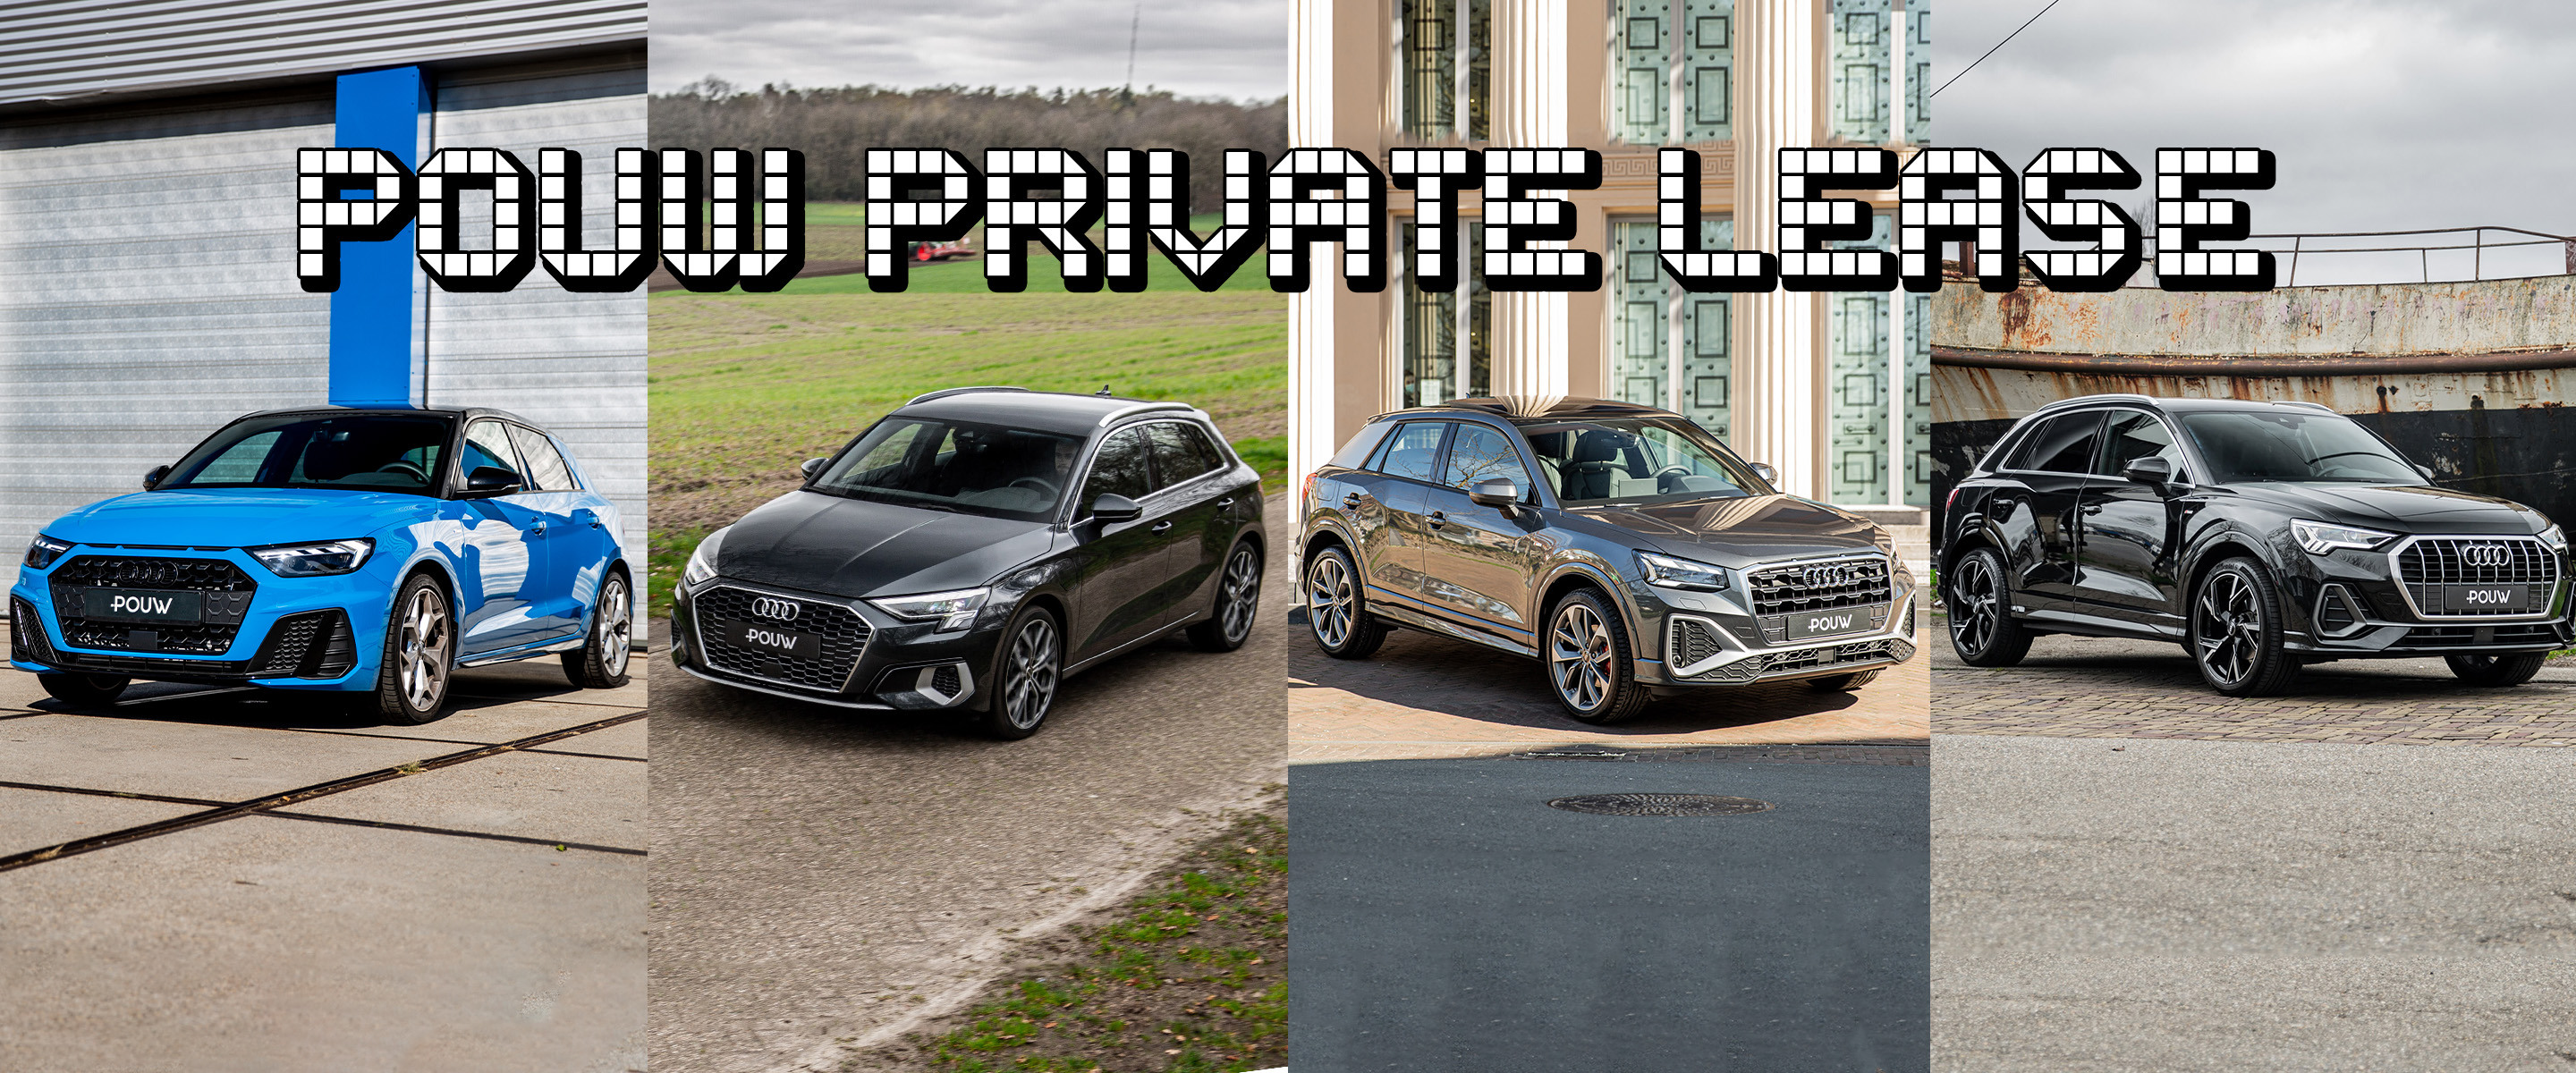 Private lease - Banner algemeen Audi